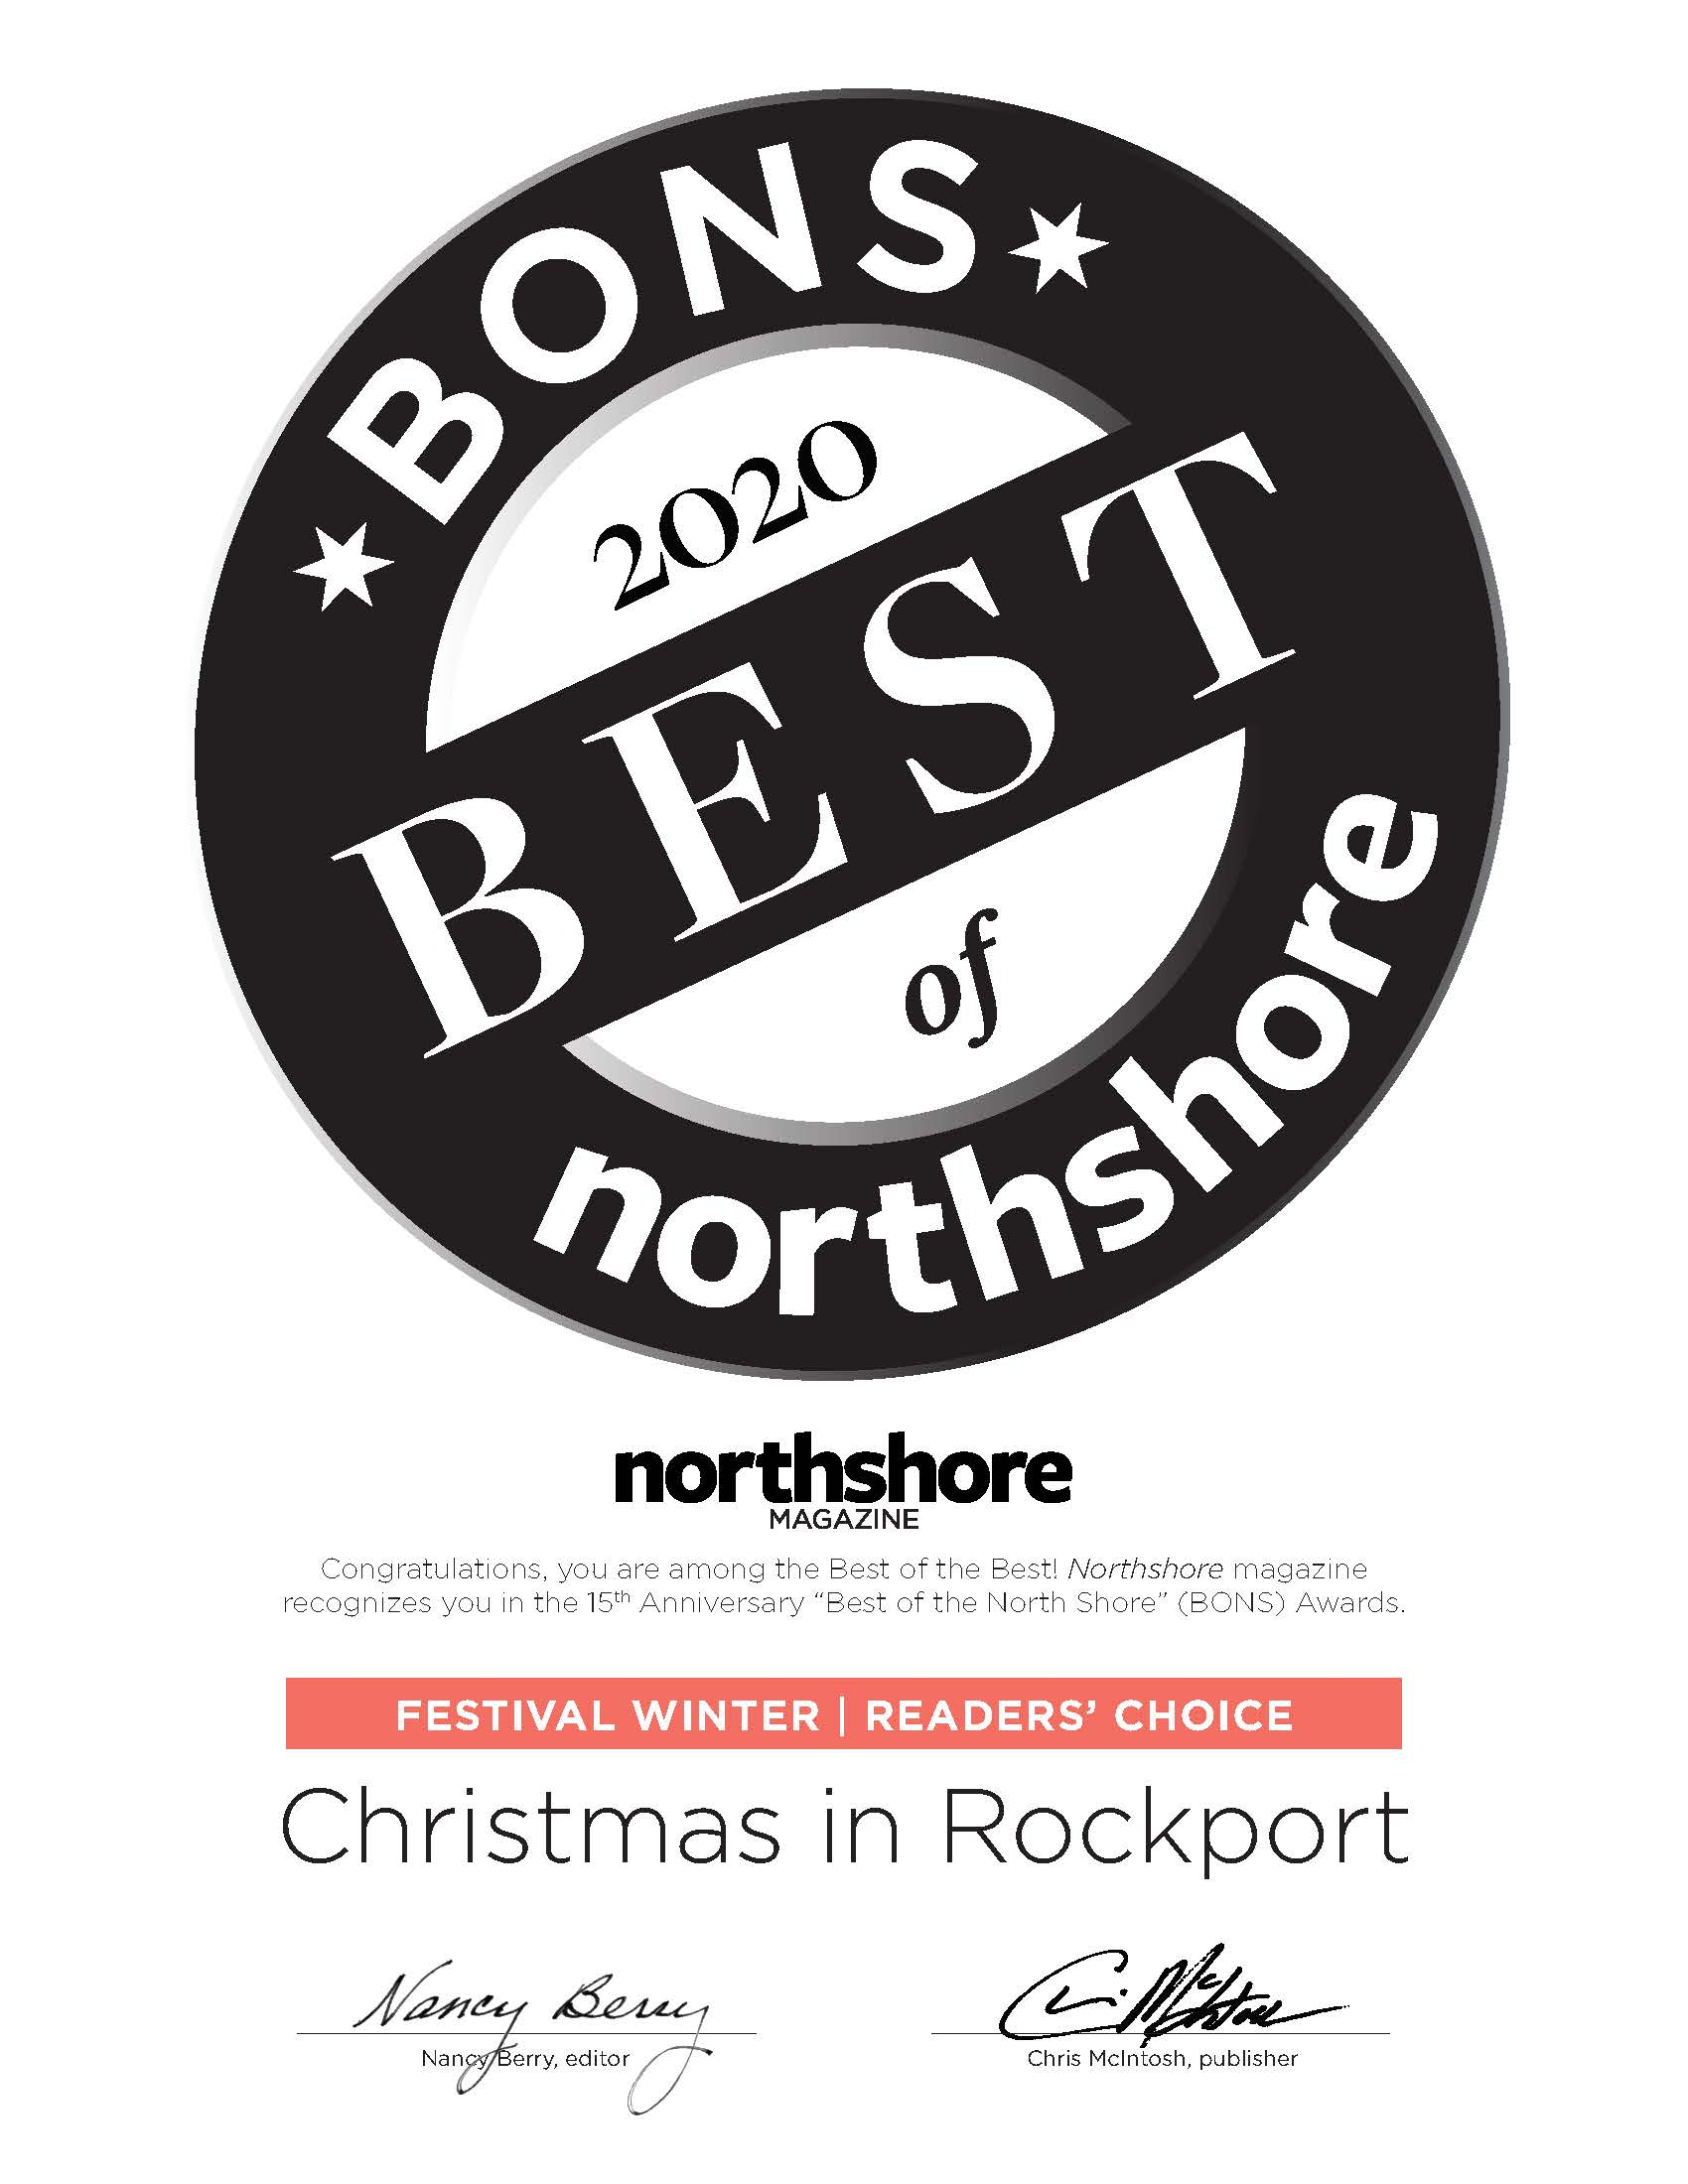 Rockport Christmas 2020 Cape Ann Chamber of Commerce Awarded BONS 2020 Best Winter